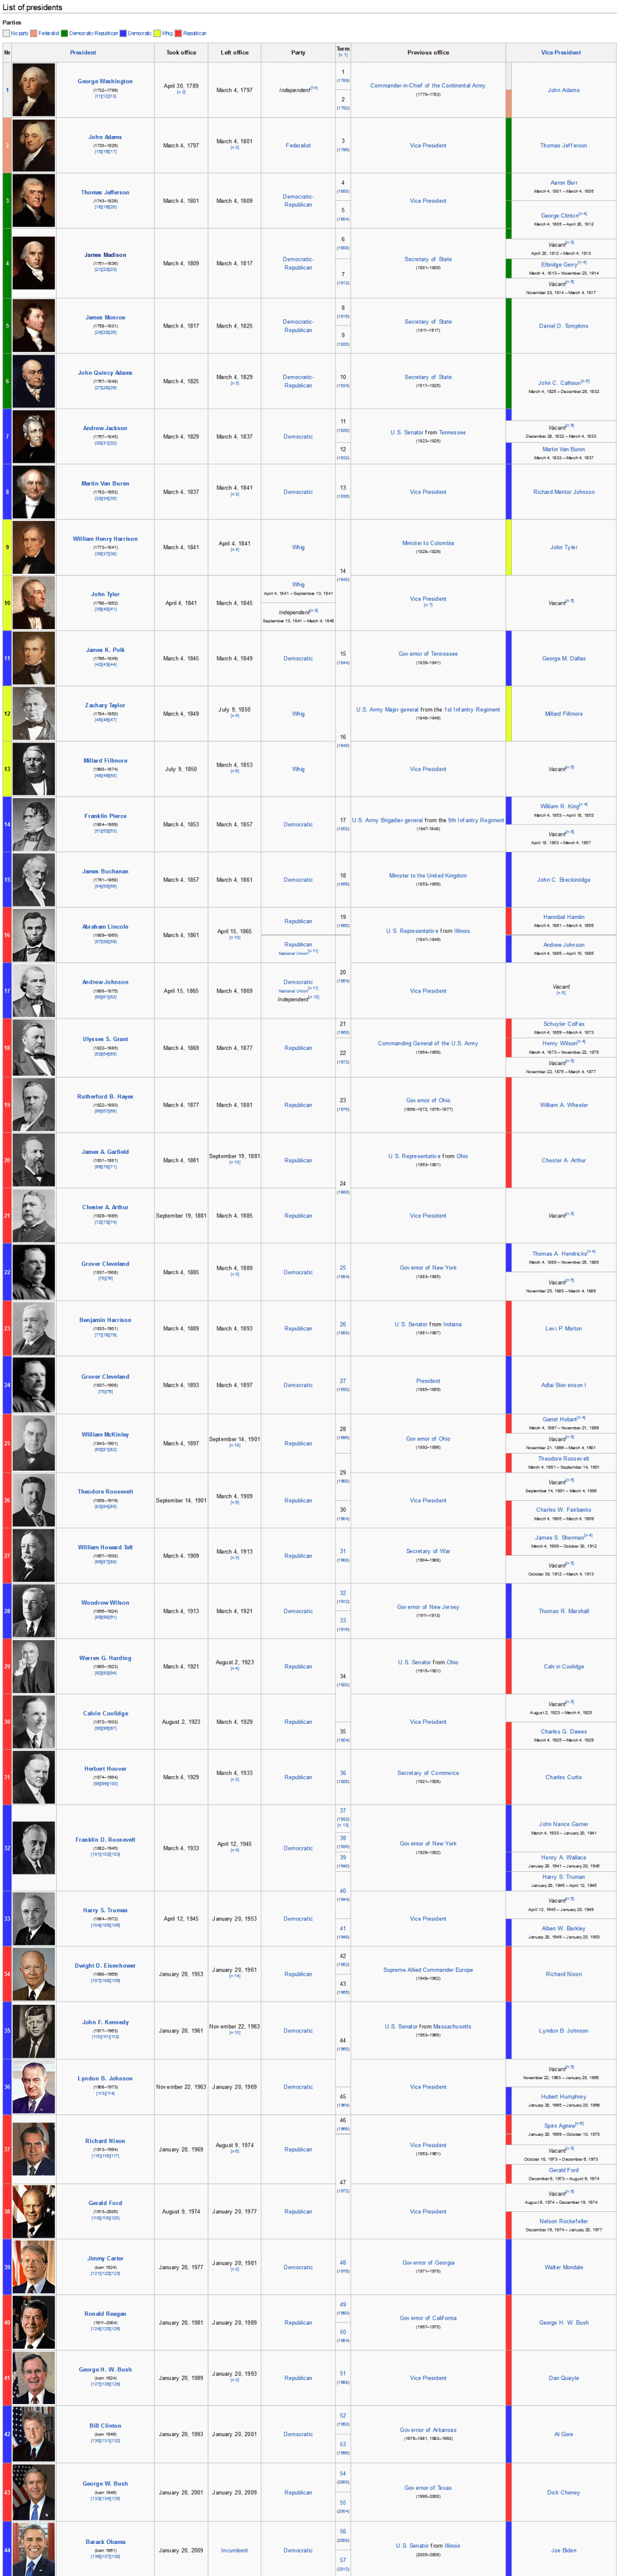 Wikipedia, the free encyclopedia' - en_wikipedia_org_wiki_List_of_Presidents_of_the_United_States